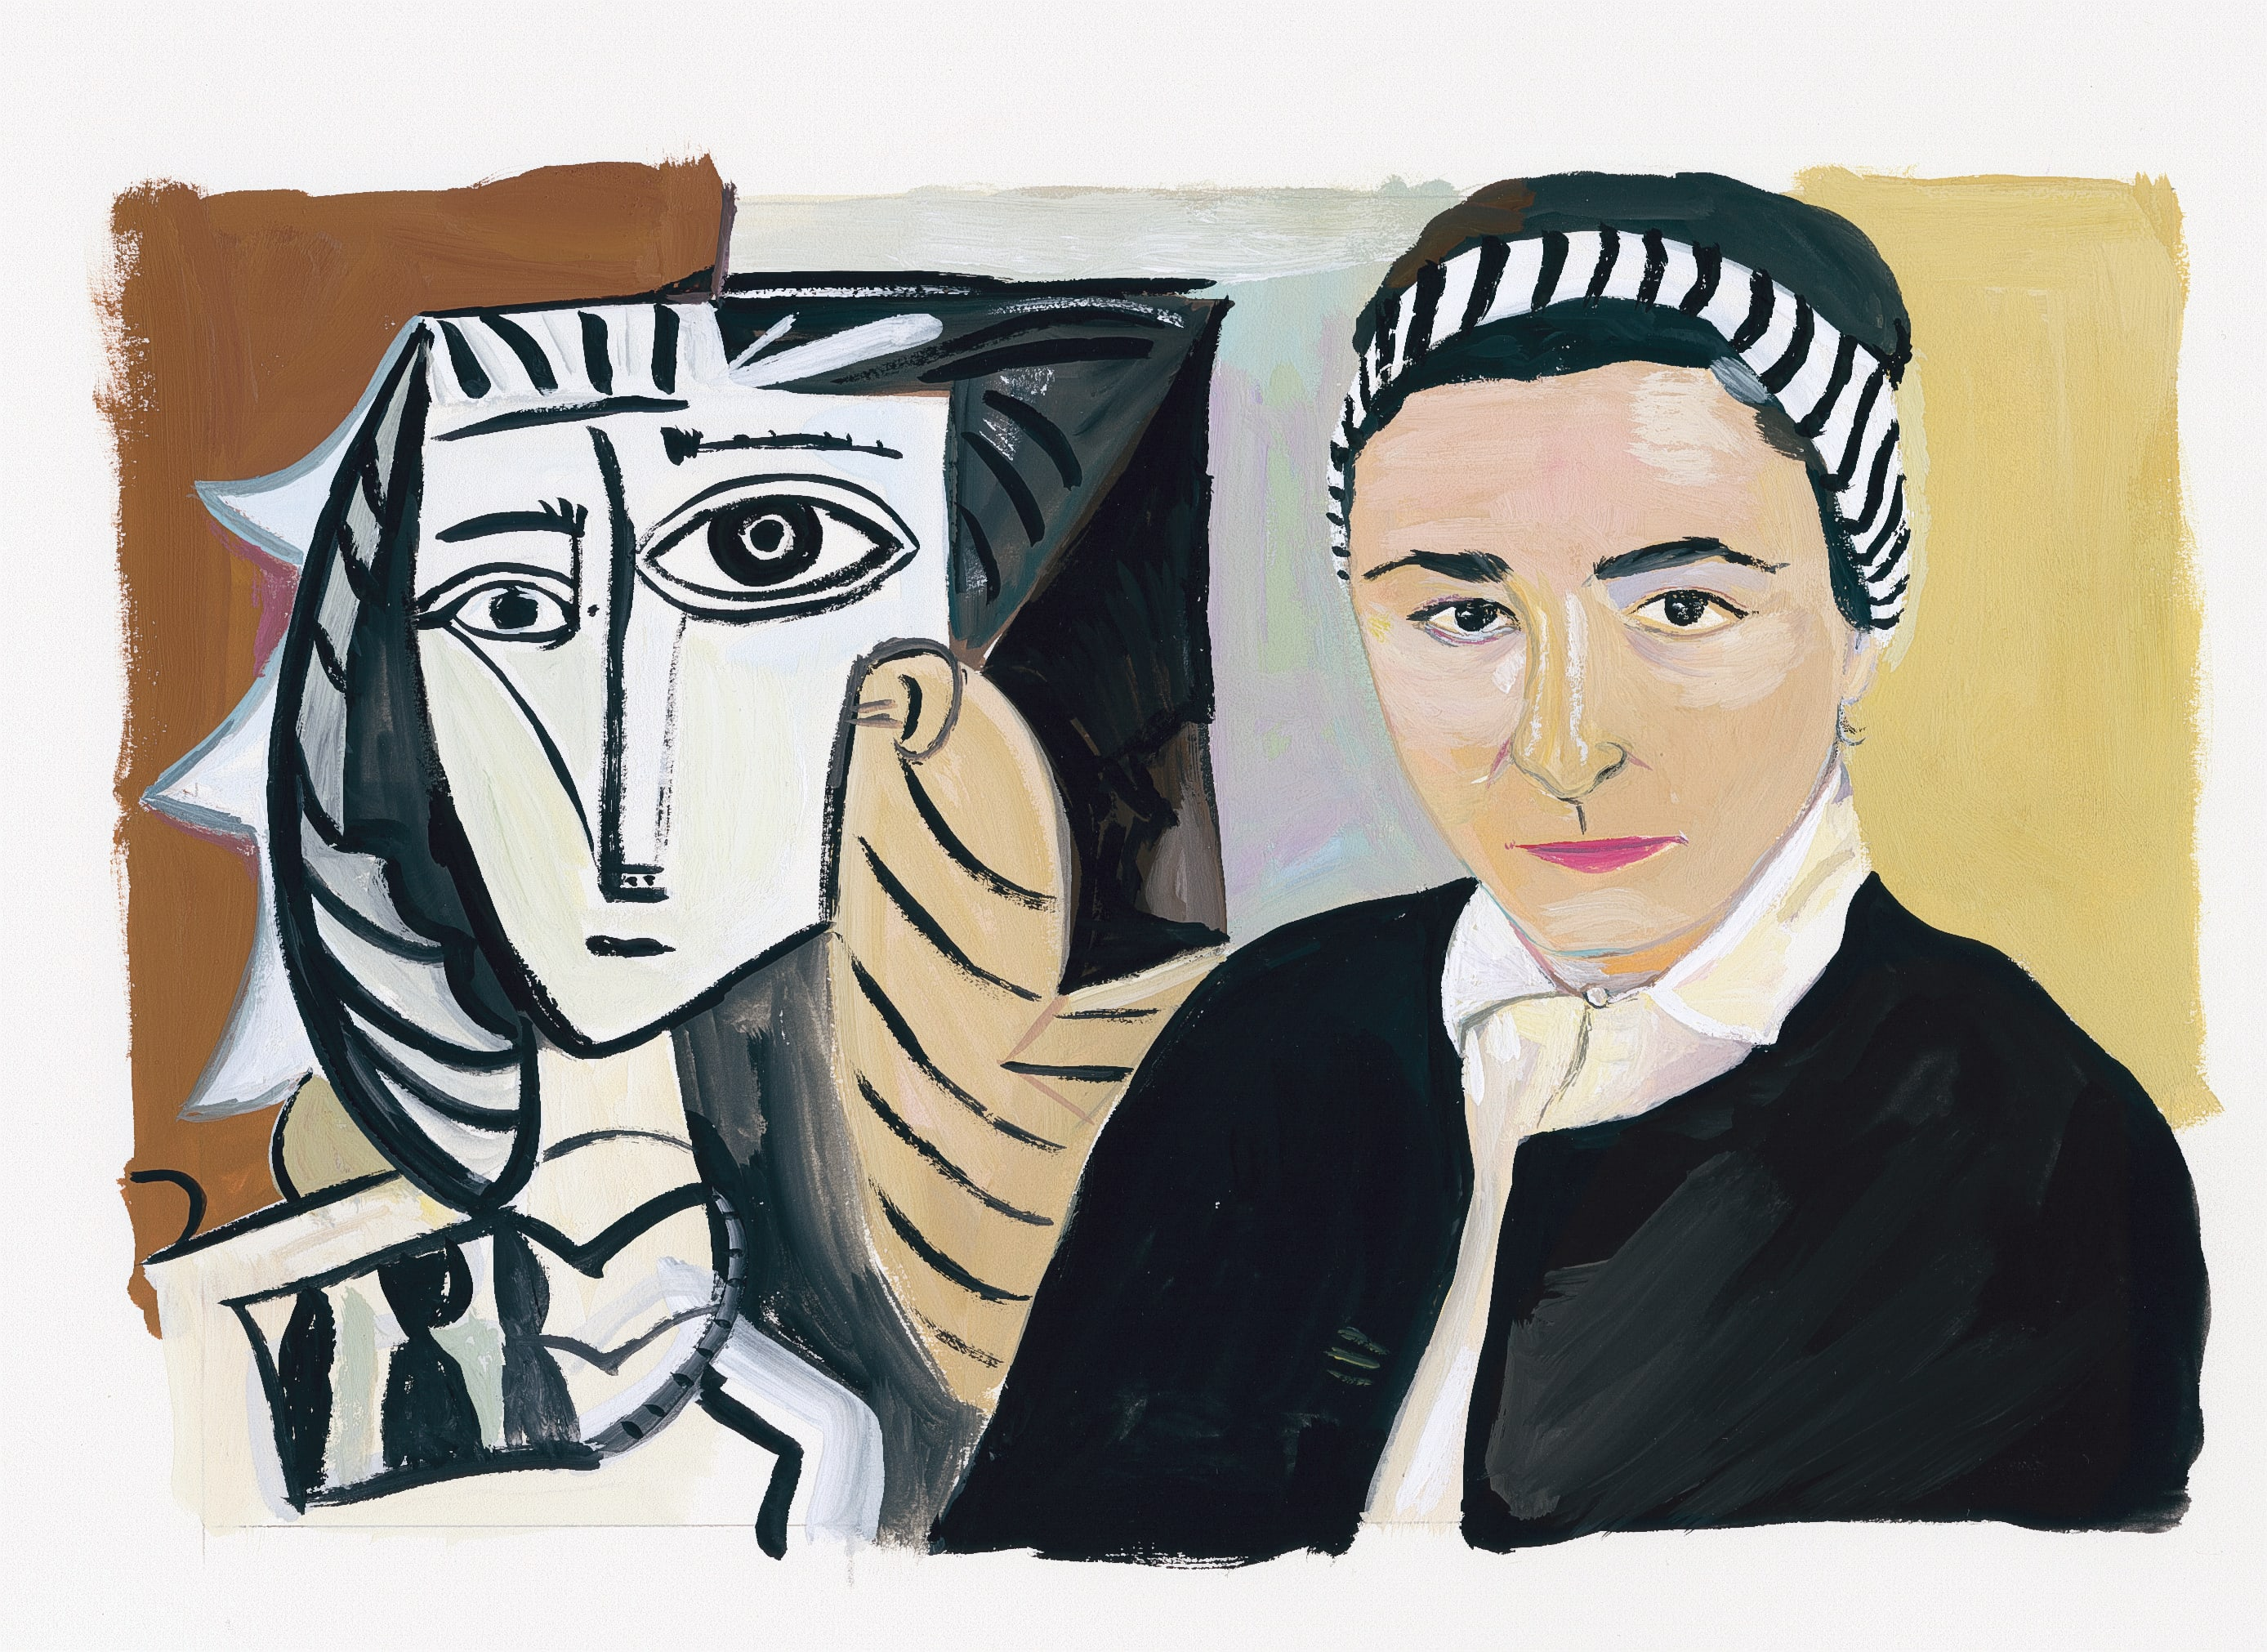 Horizontal painting in creams, black, greys, and brown. On the right a woman in a striped headband and black sweater looks directly our at the viewer. On the left behind her, an abstracted, geometric, cubist-style face in black and white.